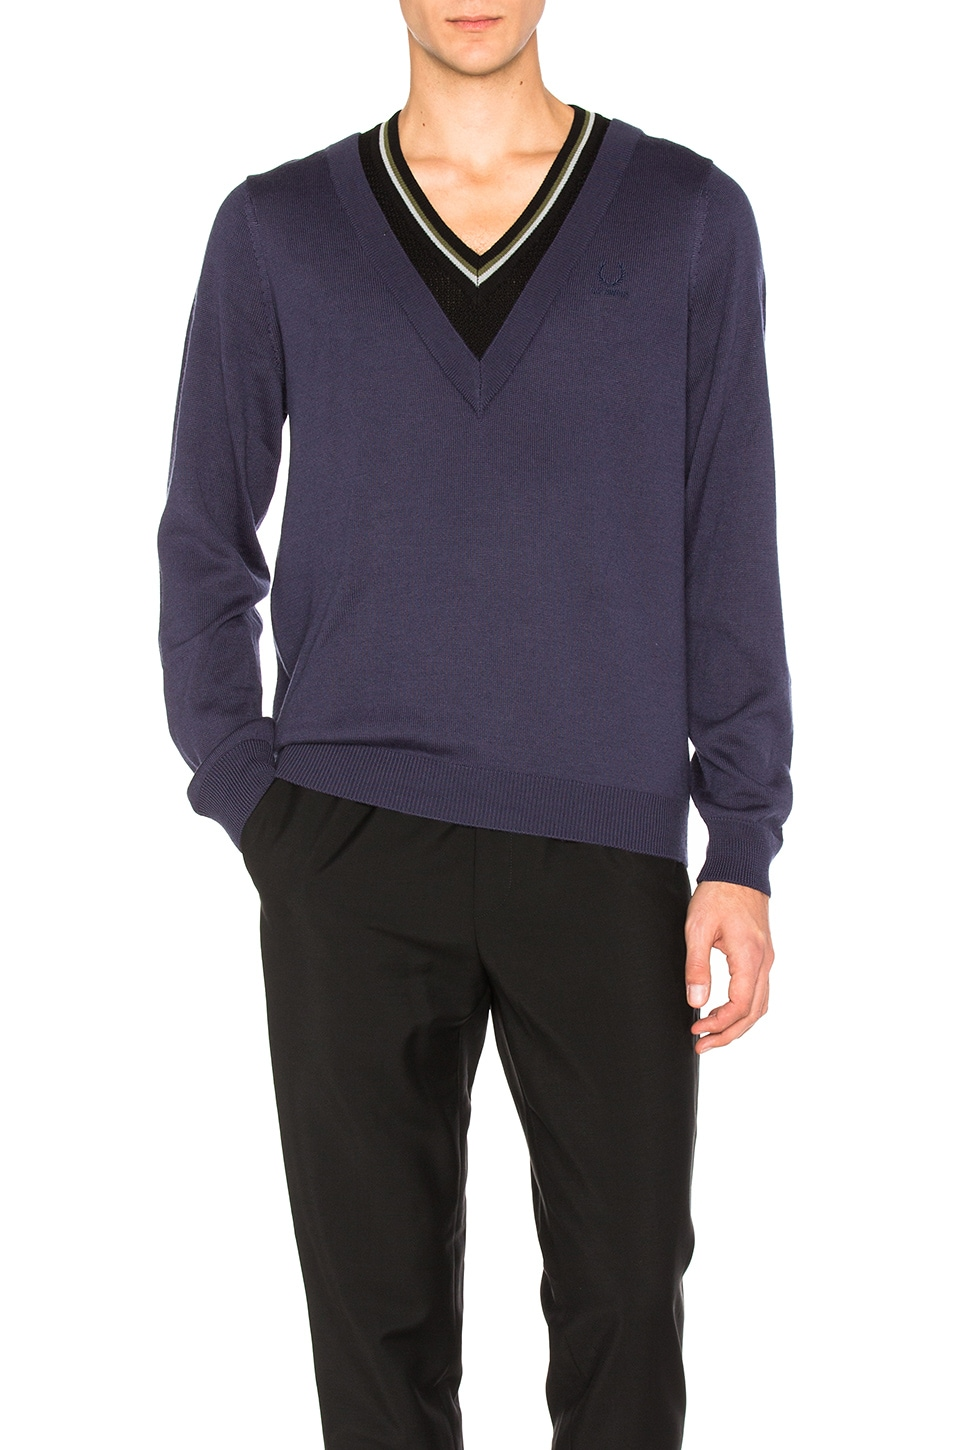 Double Layer V Neck Sweater by Fred Perry x Raf Simons